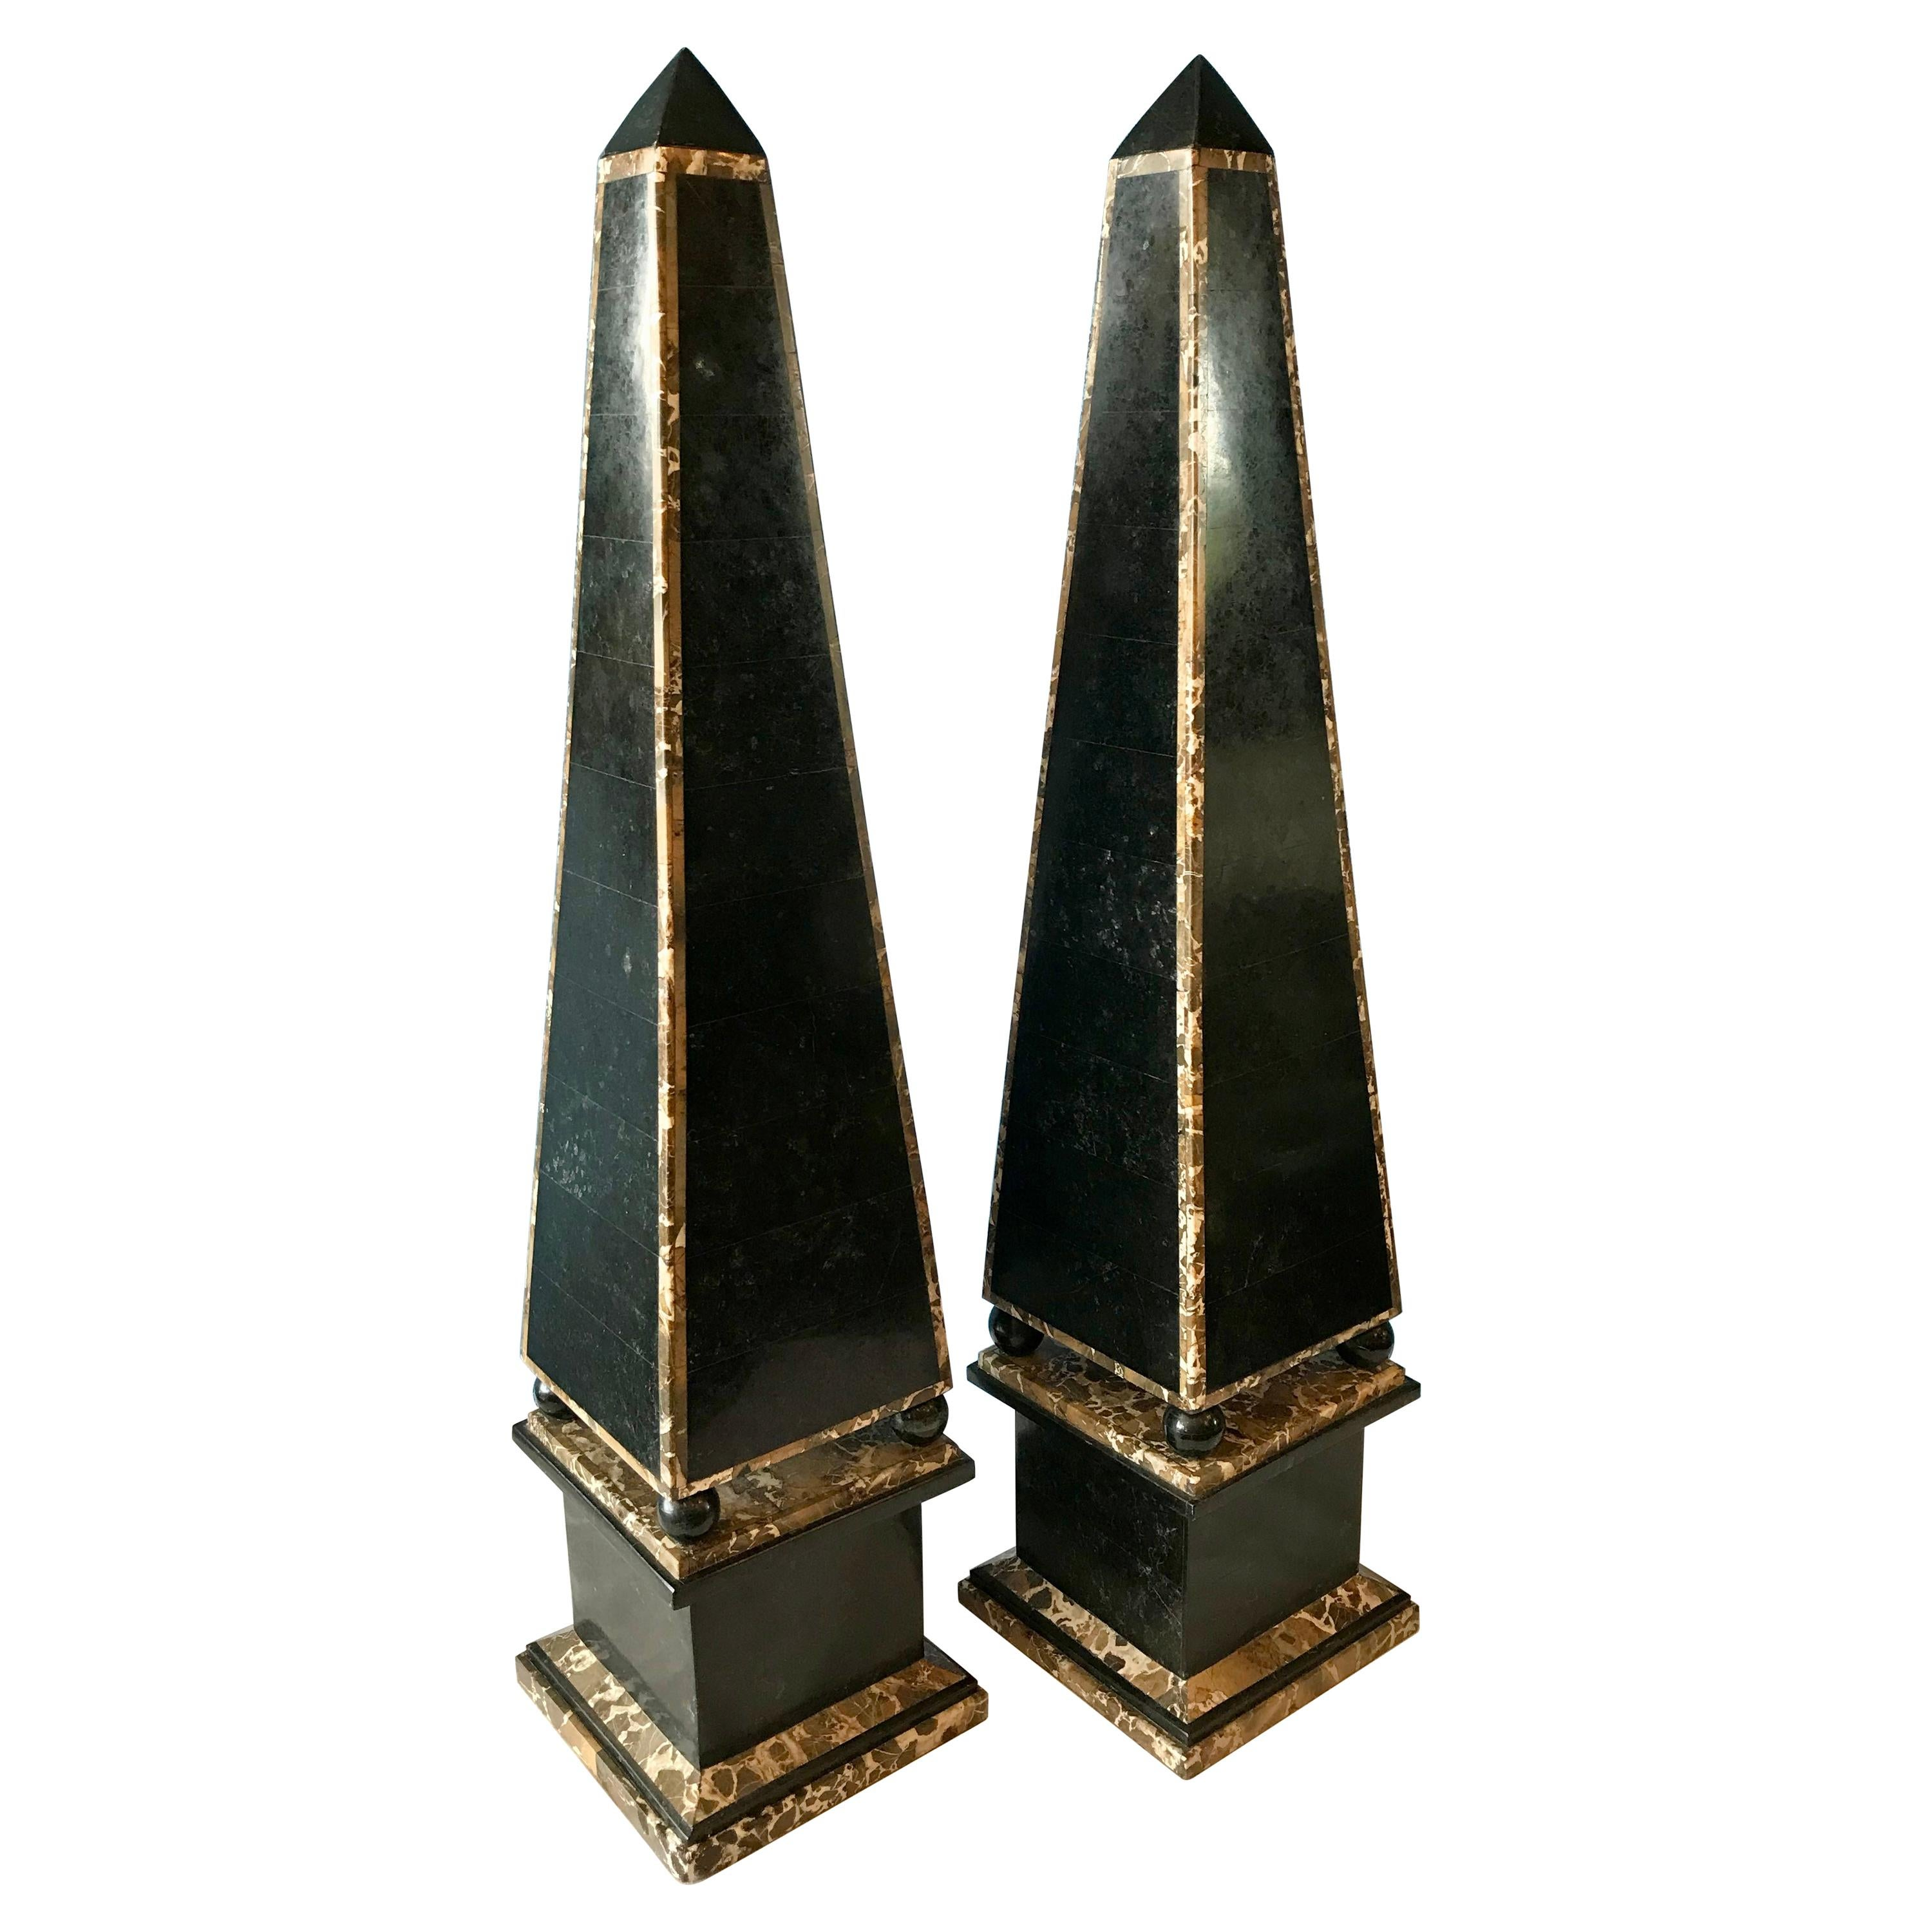 Pair of Enormous Obelisks by Maitland Smith